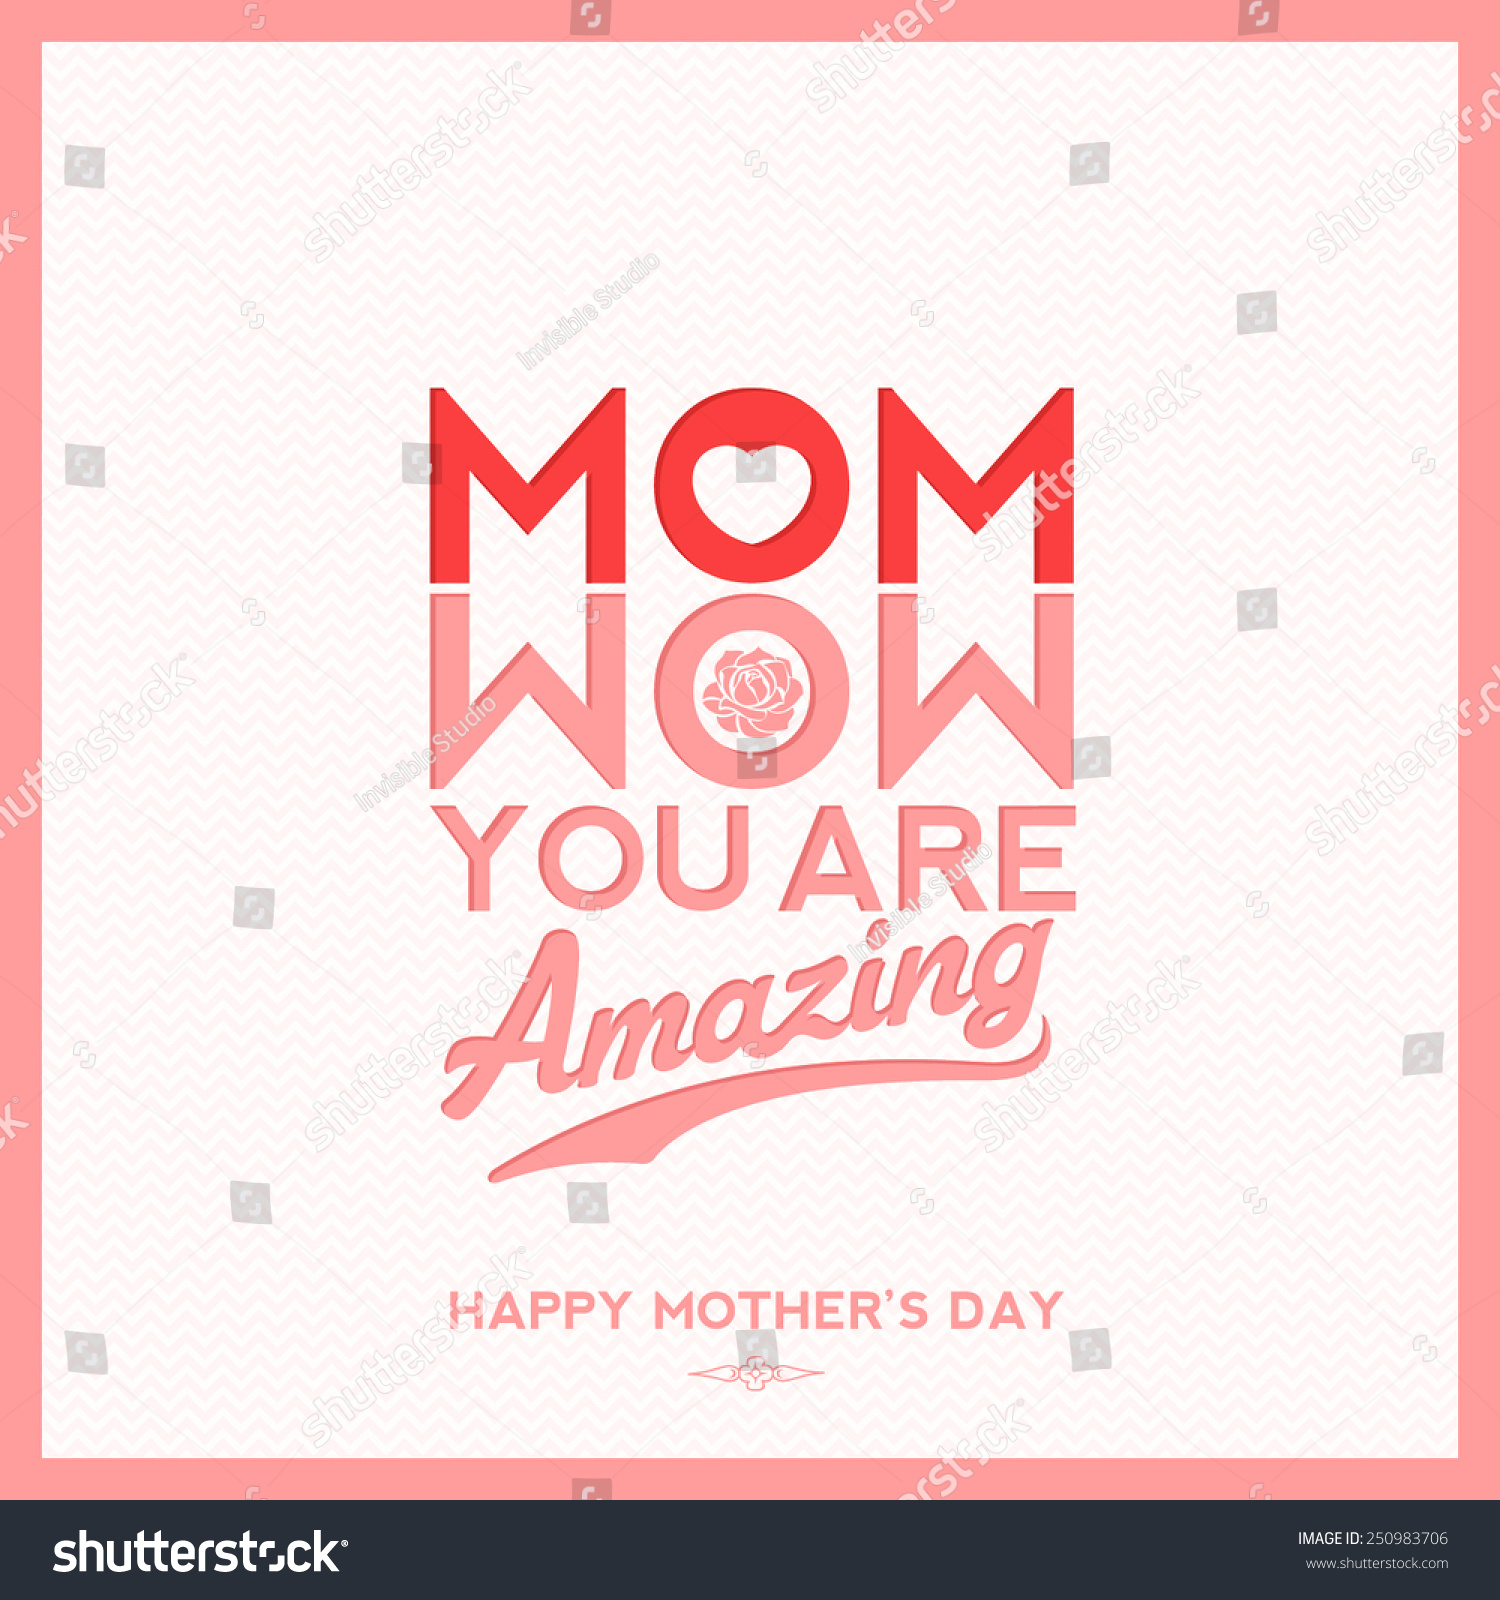 Wow You Re Amazing: Mom Wow You Are Amazing, Creative Typographical Background